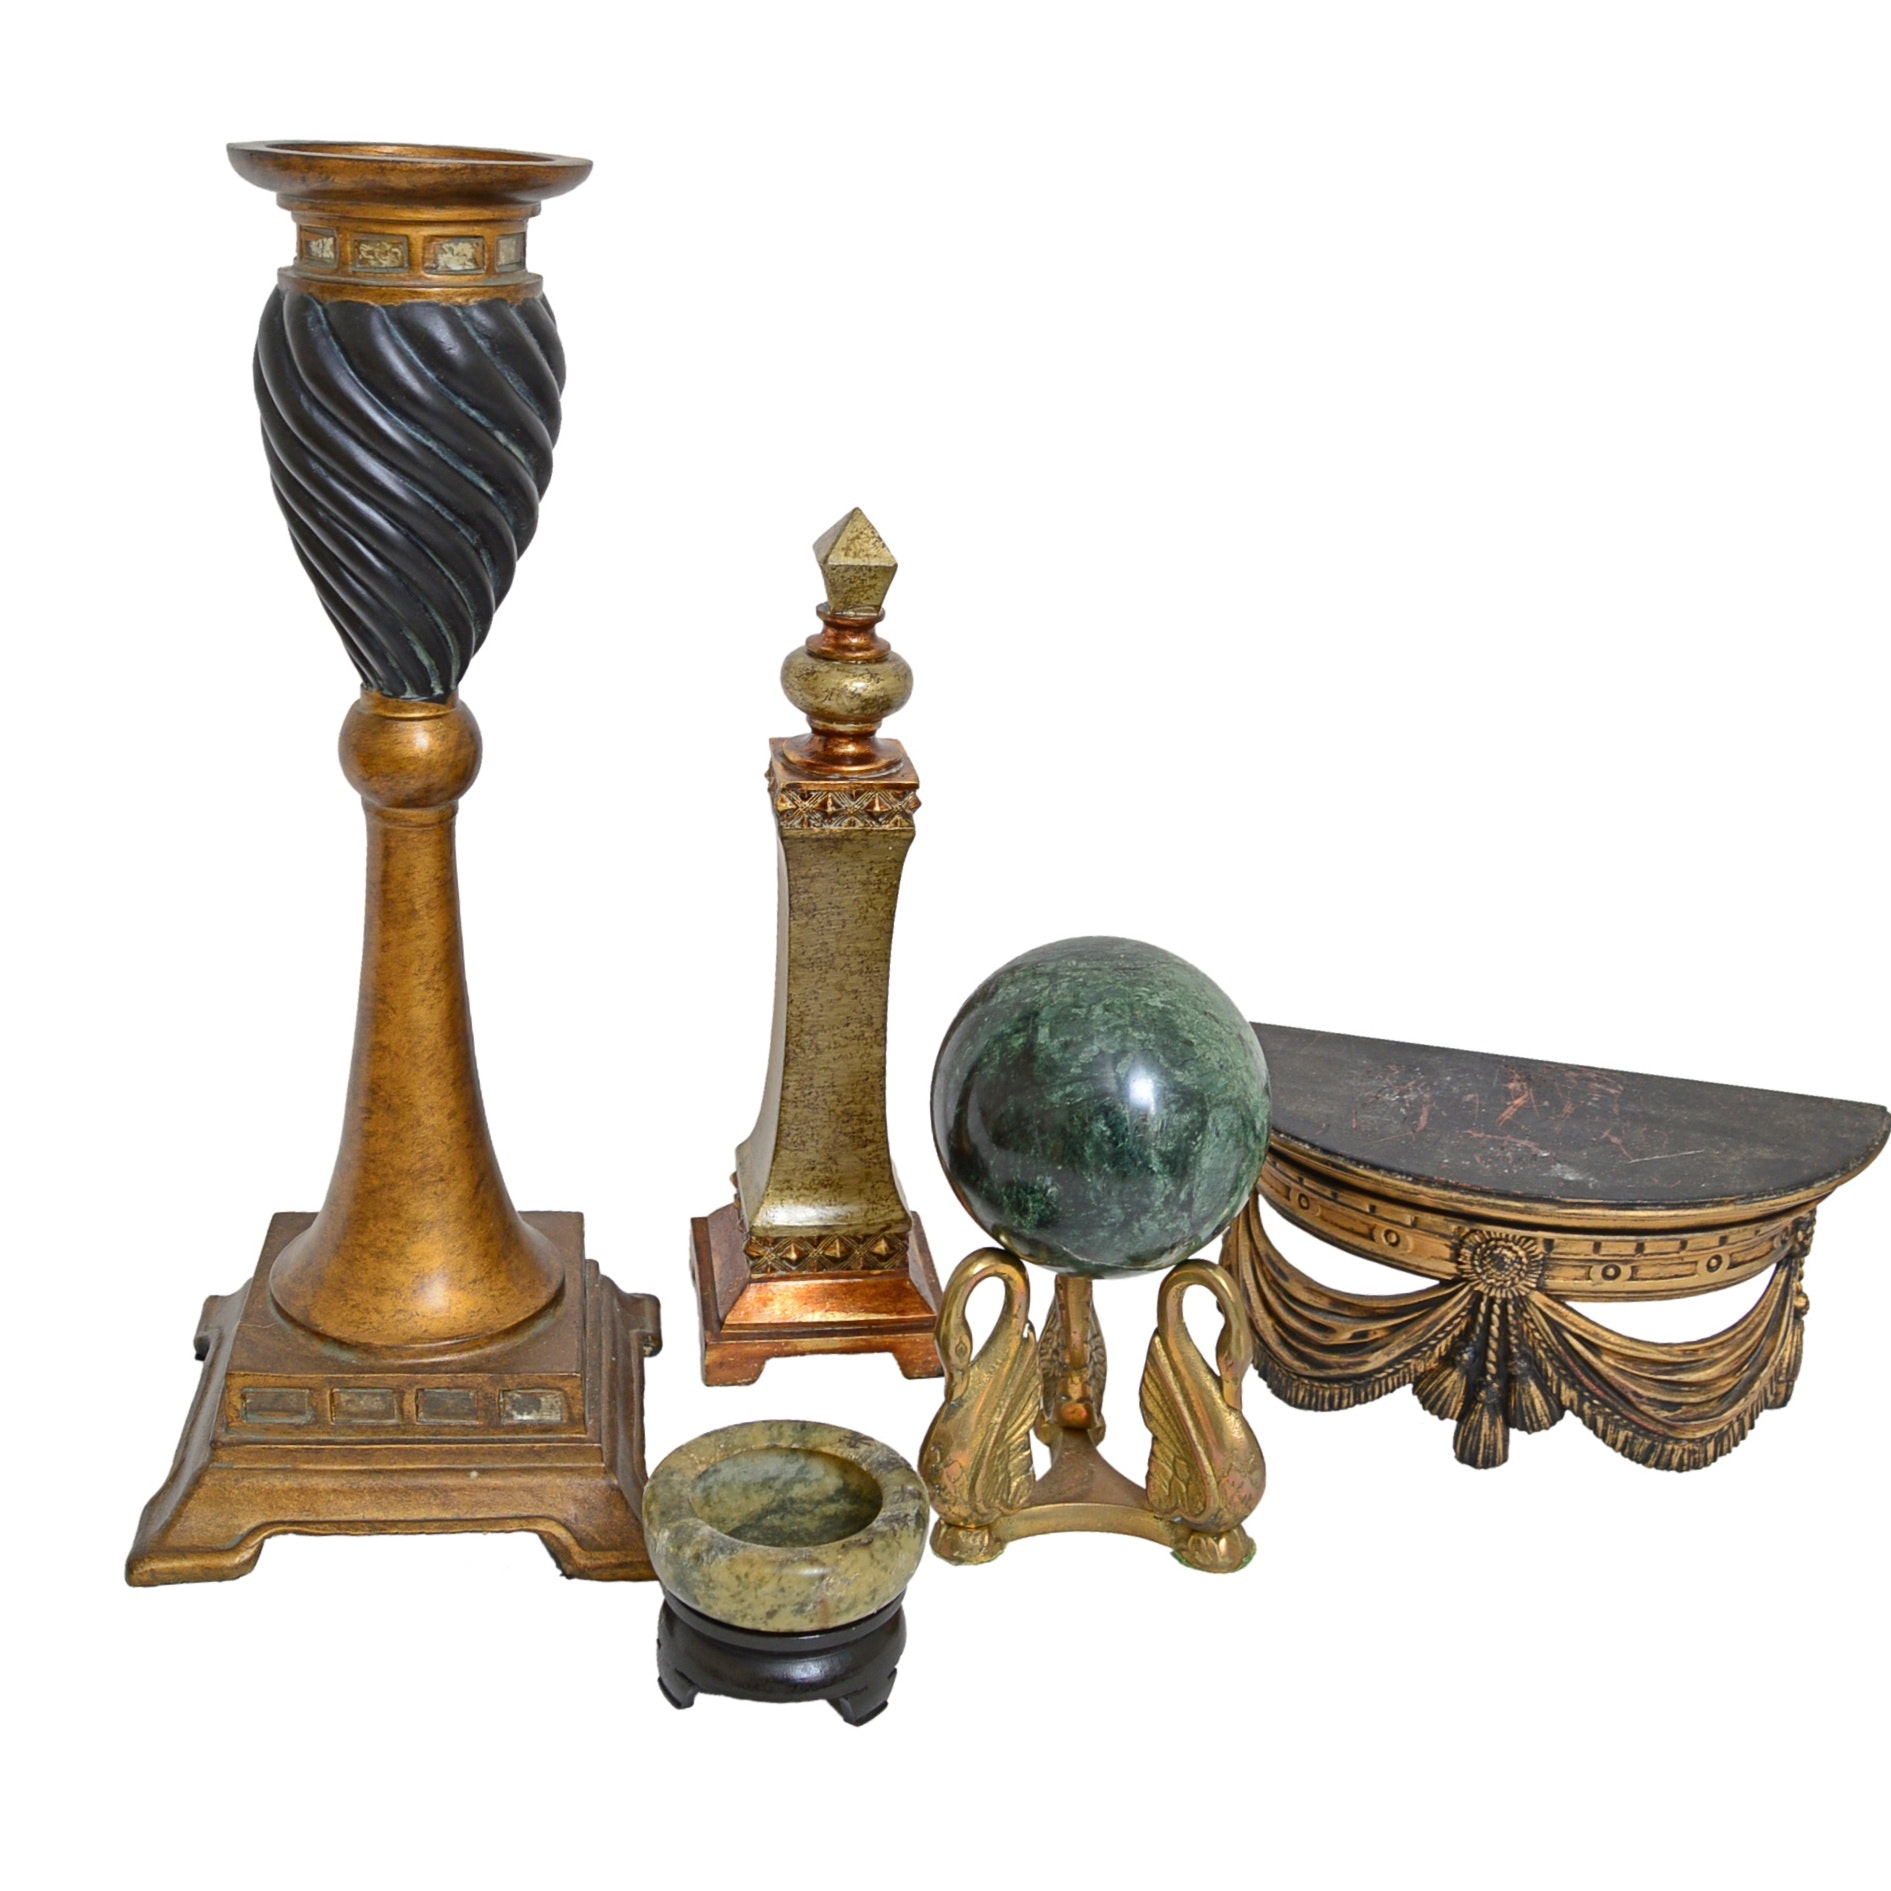 Neoclassic Style Figurines with Marble Ball on Brass Swan Stand, Obelisk, Shelf